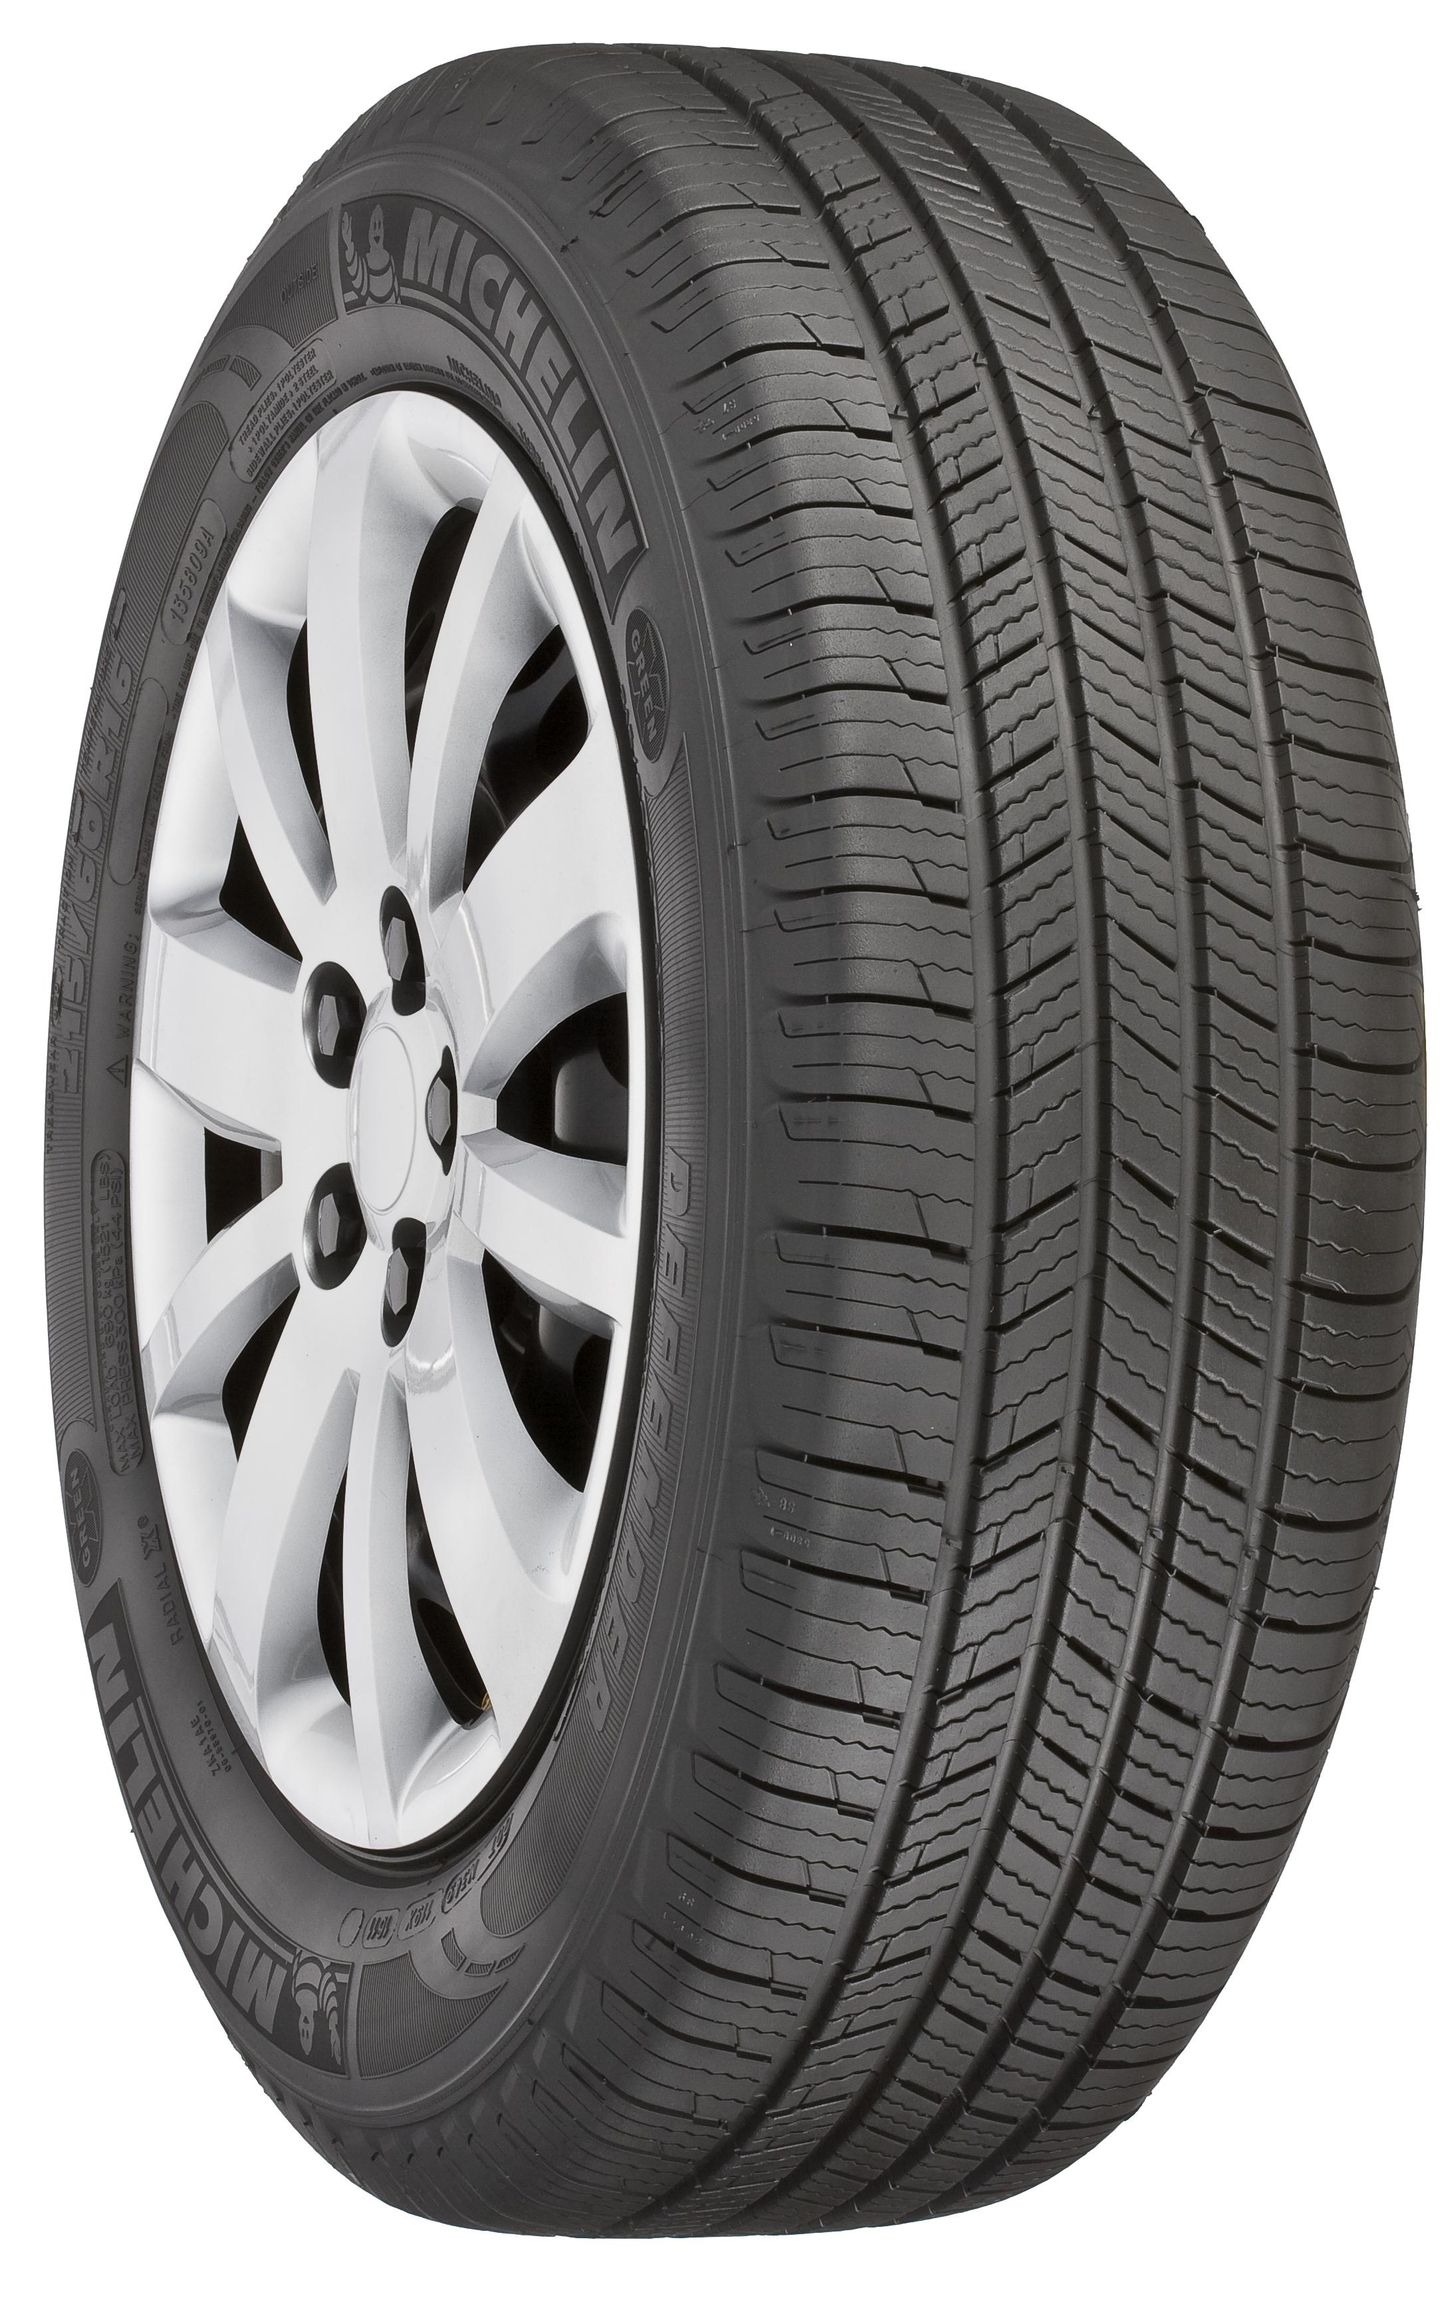 Buying The Best Tires For Your Vehicle Pays Off The Boston